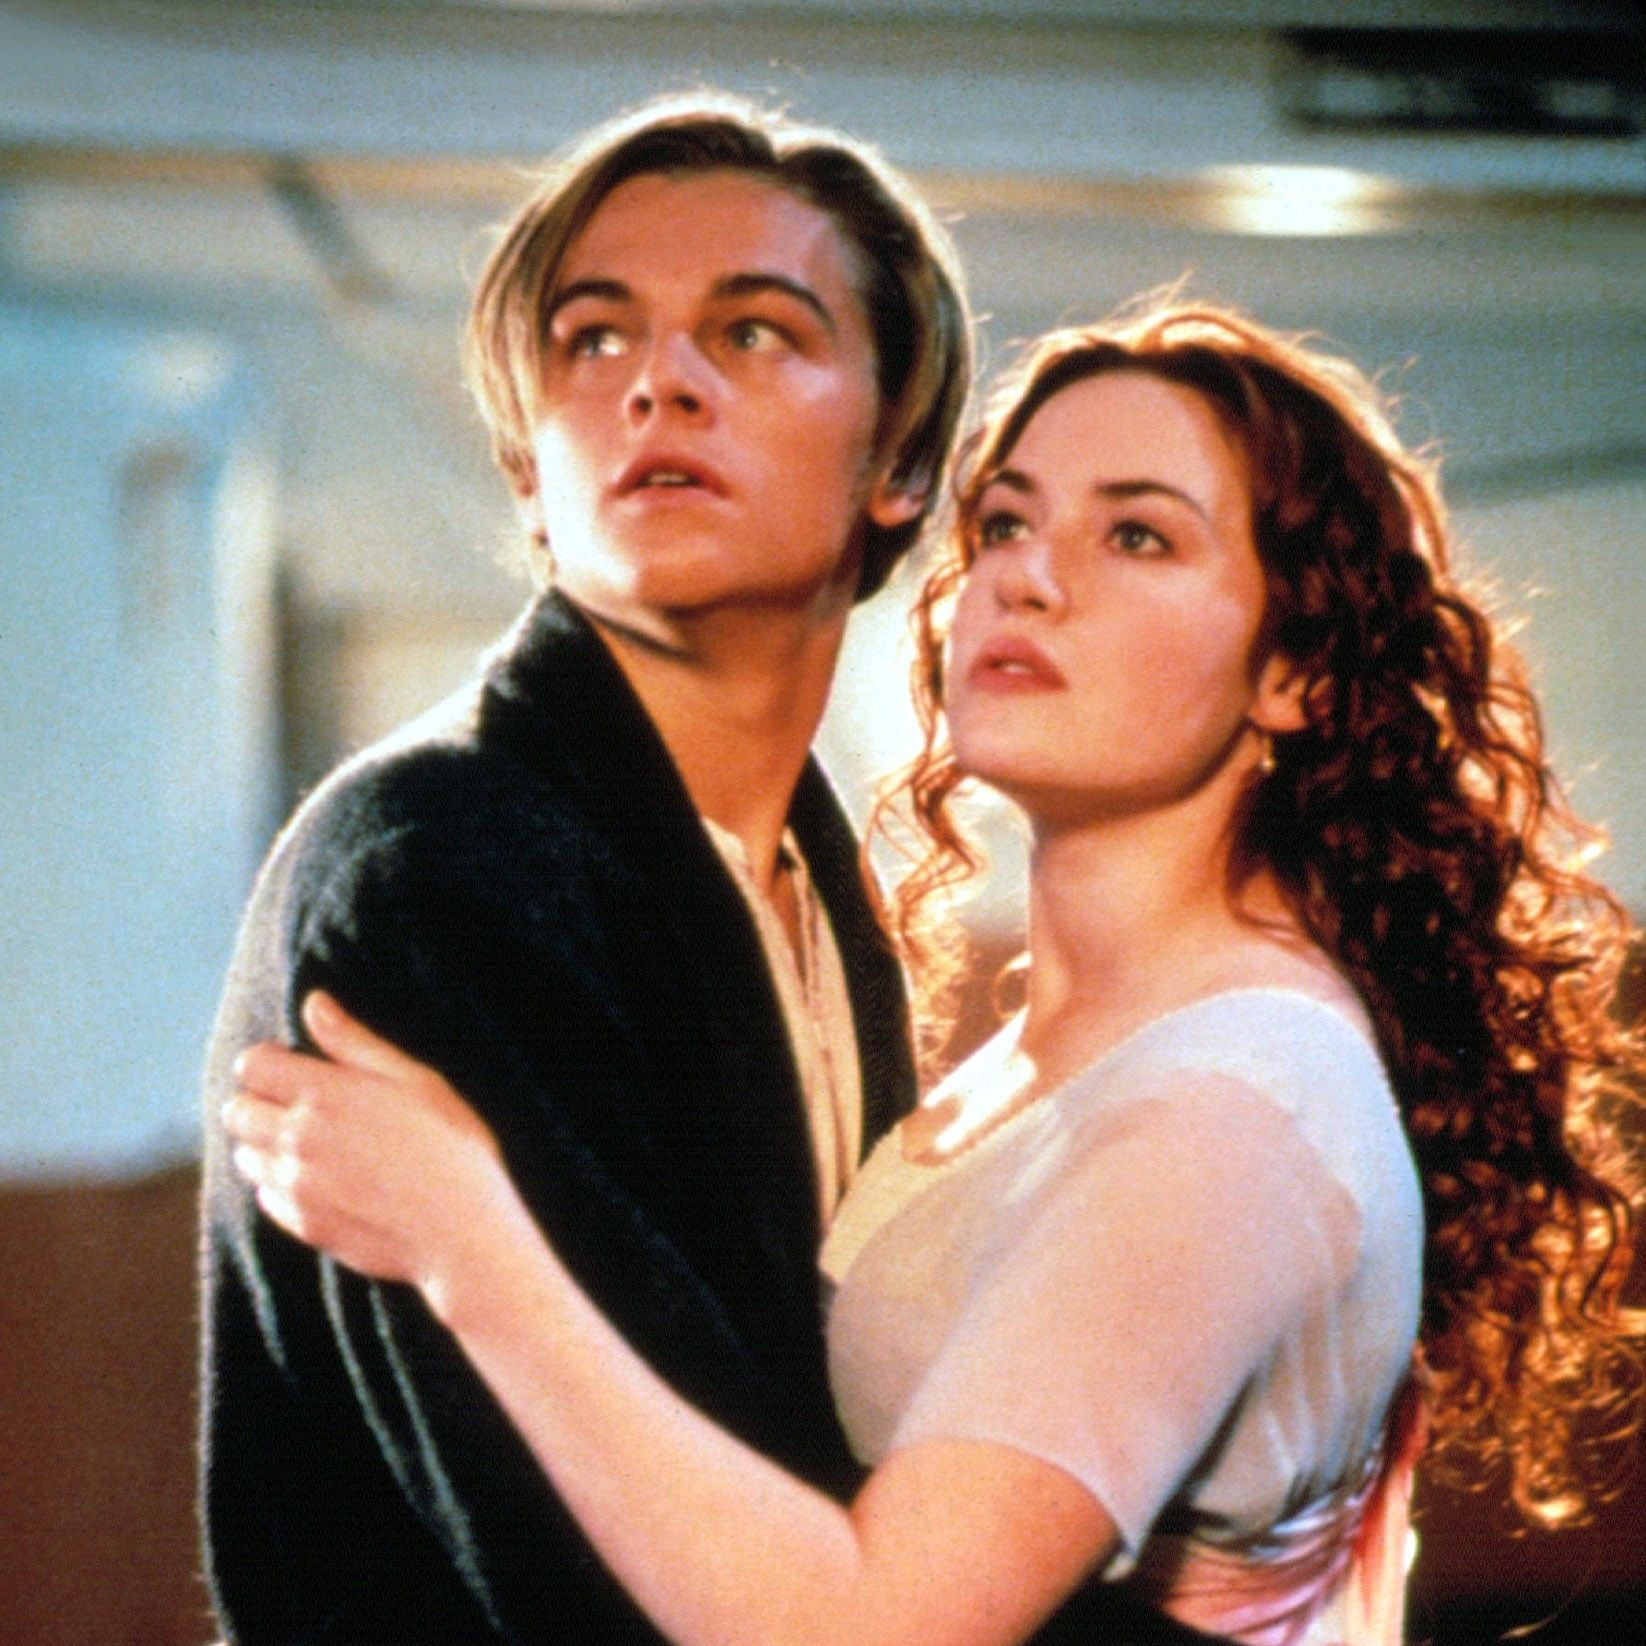 <p>Sure, Rose may have taken up way more than her fair share of that&nbsp&#x3B;floating door and guaranteeing an icy fate for poor Jack in the end, but these two star-crossed lovers are as iconic as they come. And young Leo is the kind of eye candy you never get tired of watching.&nbsp&#x3B;</p>